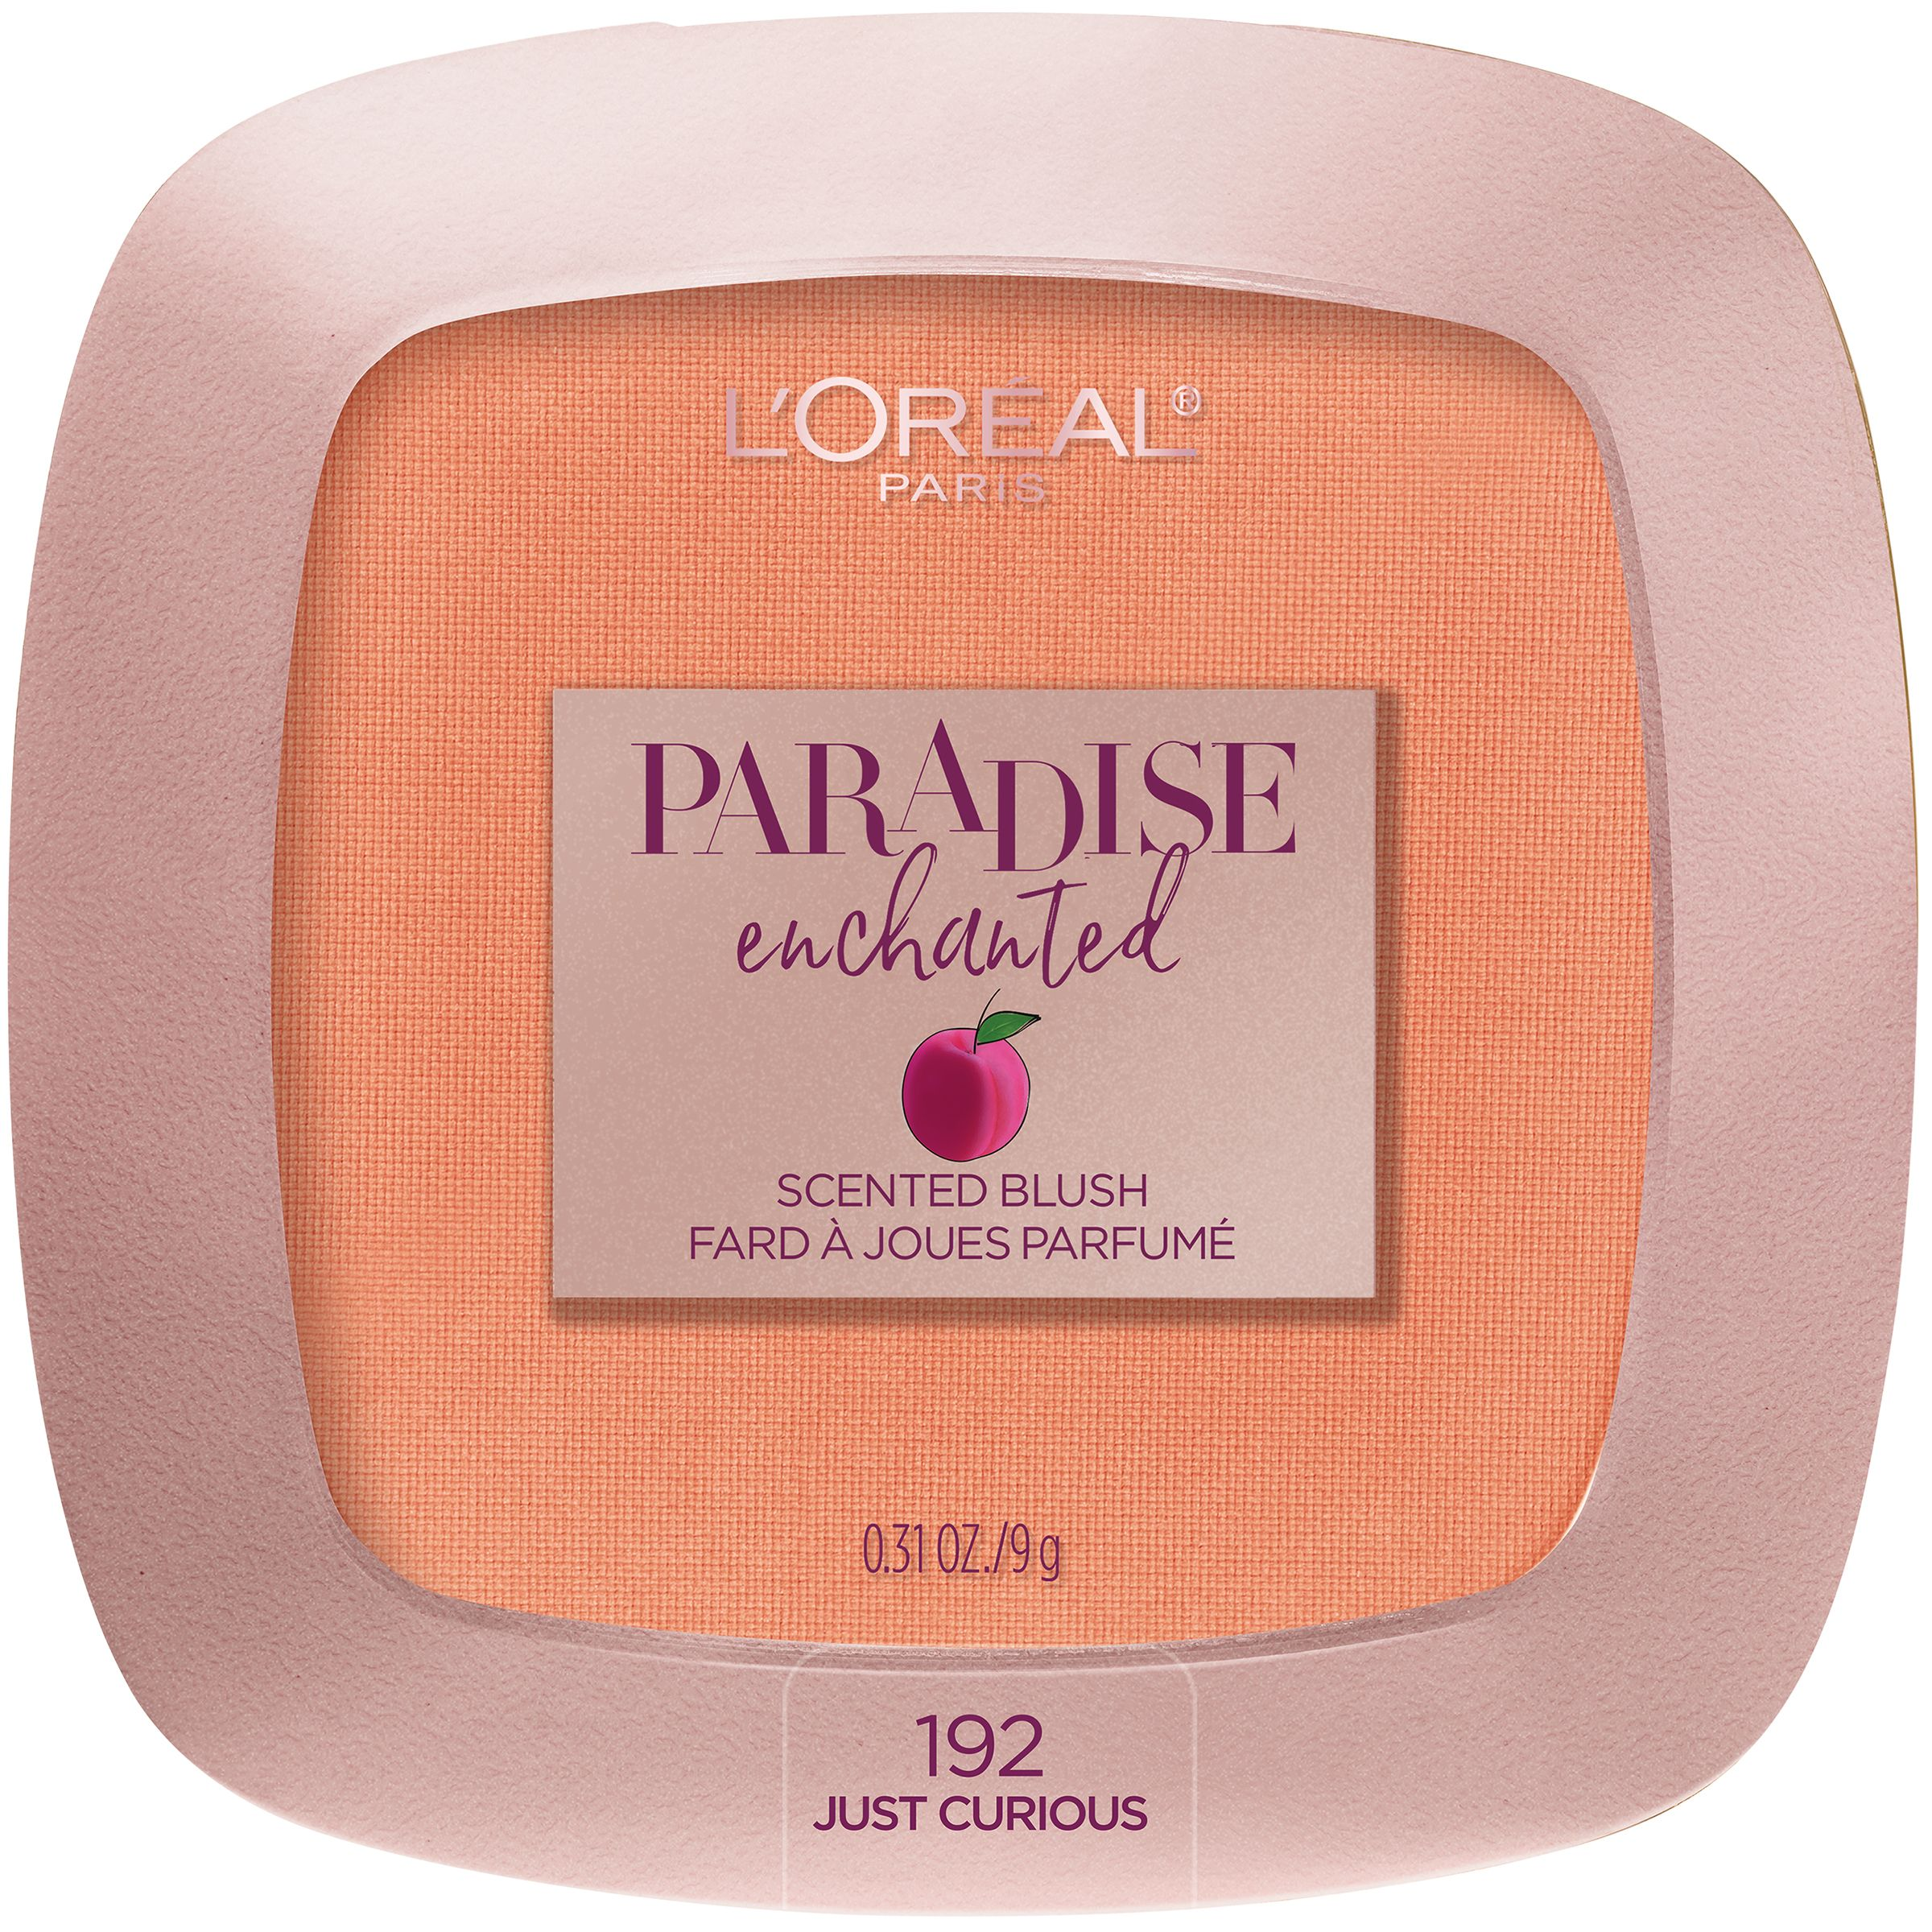 L'Oreal Paris Paradise Enchanted Fruit-Scented Blush Makeup, Just Curious